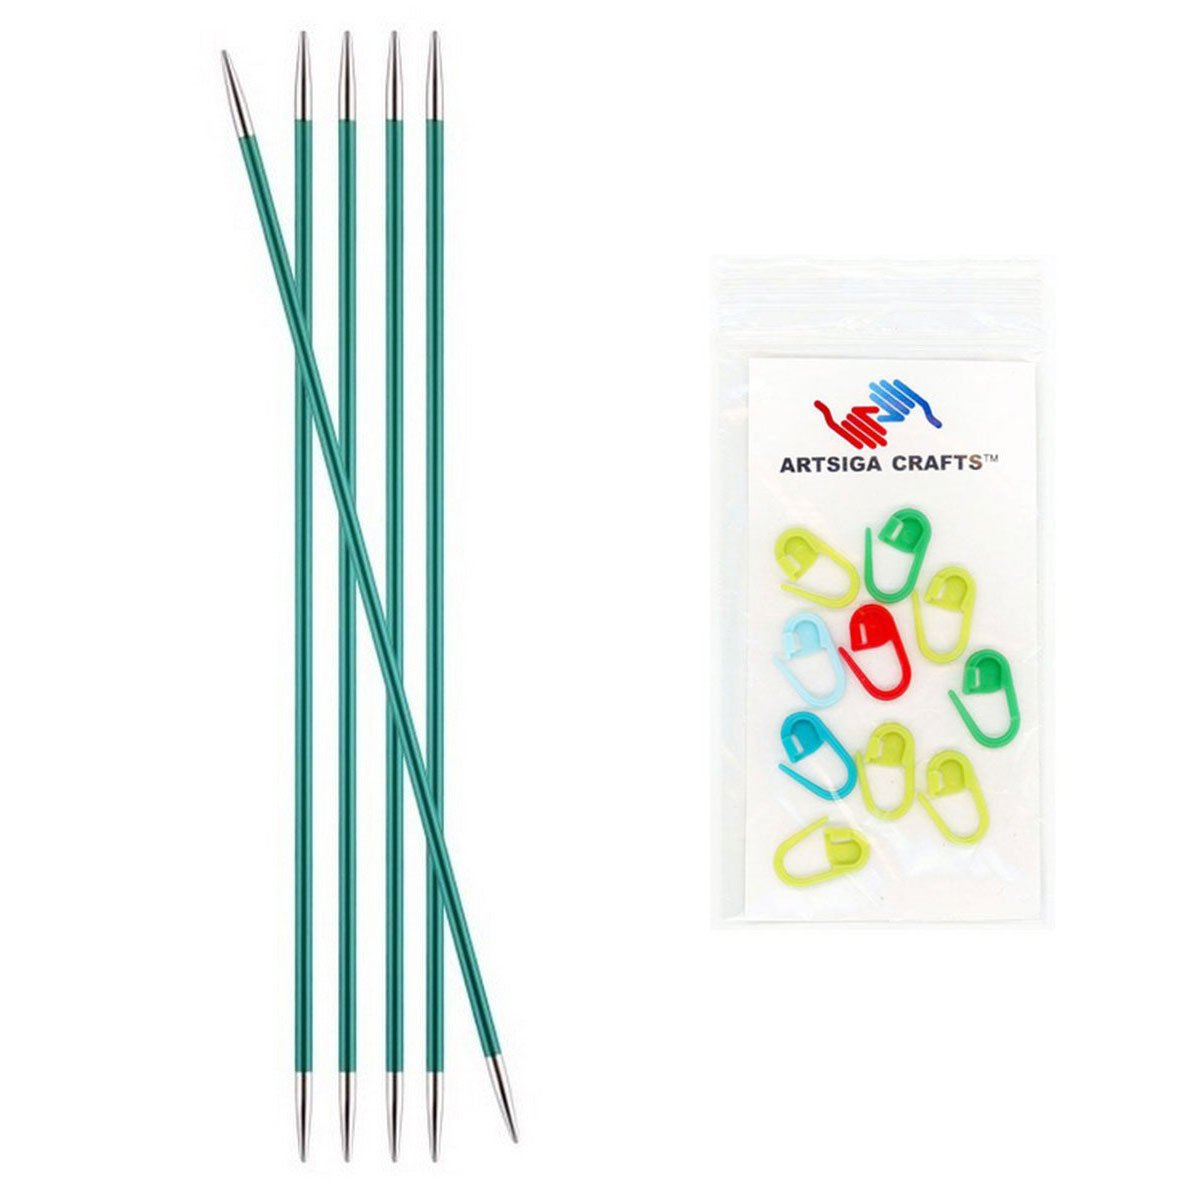 Size US 1 Knitters Pride Zing Double Pointed Knitting Needles 6in 2.25mm Bundle with 10 Artsiga Crafts Stitch Markers 140002